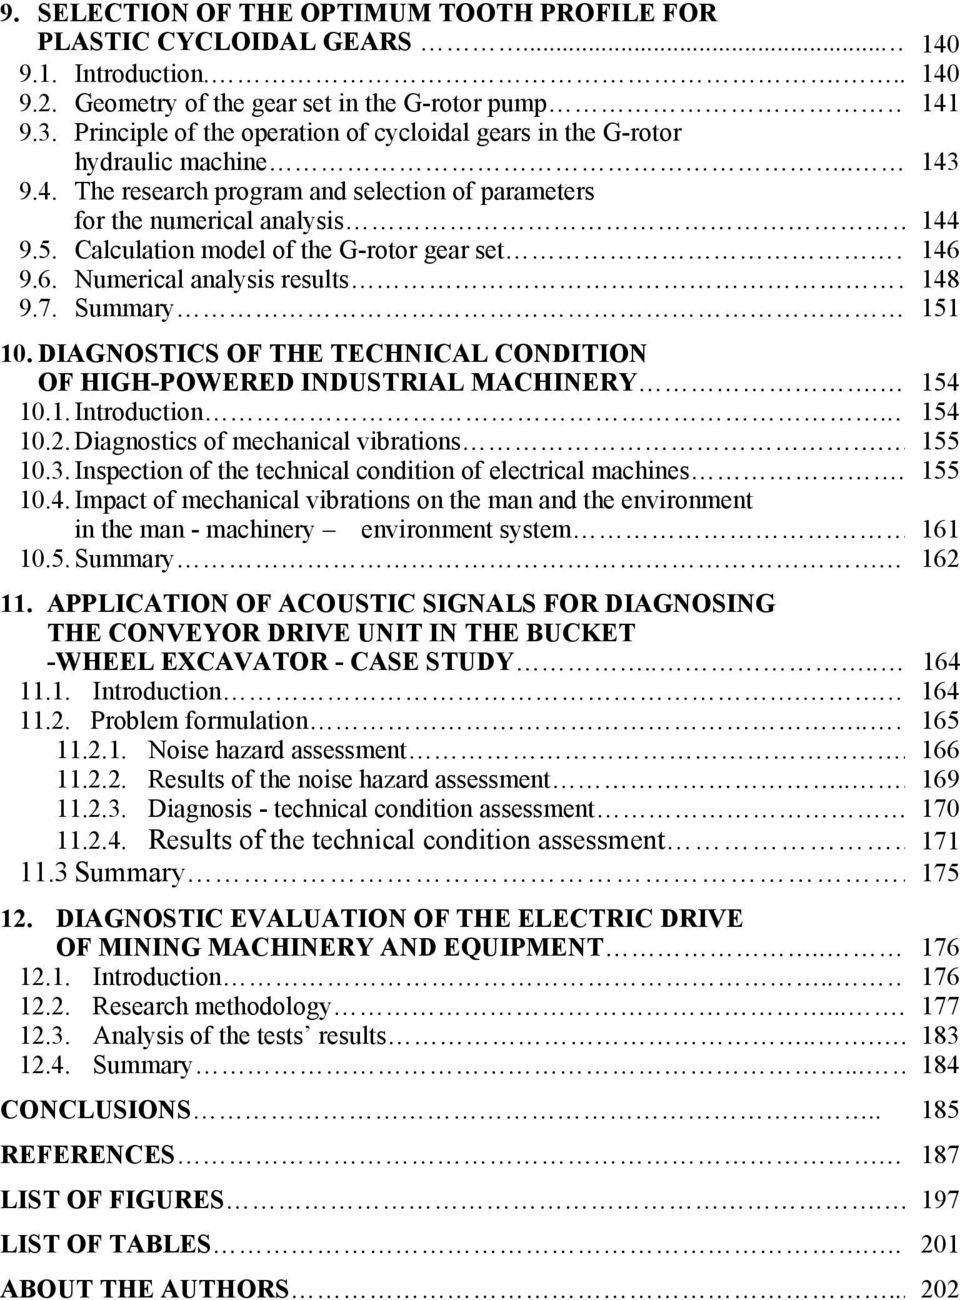 Calculation model of the G-rotor gear set 146 9.6. Numerical analysis results 148 9.7. Summary.. 151 10. DIAGNOSTICS OF THE TECHNICAL CONDITION OF HIGH-POWERED INDUSTRIAL MACHINERY... 154 10.1. Introduction.